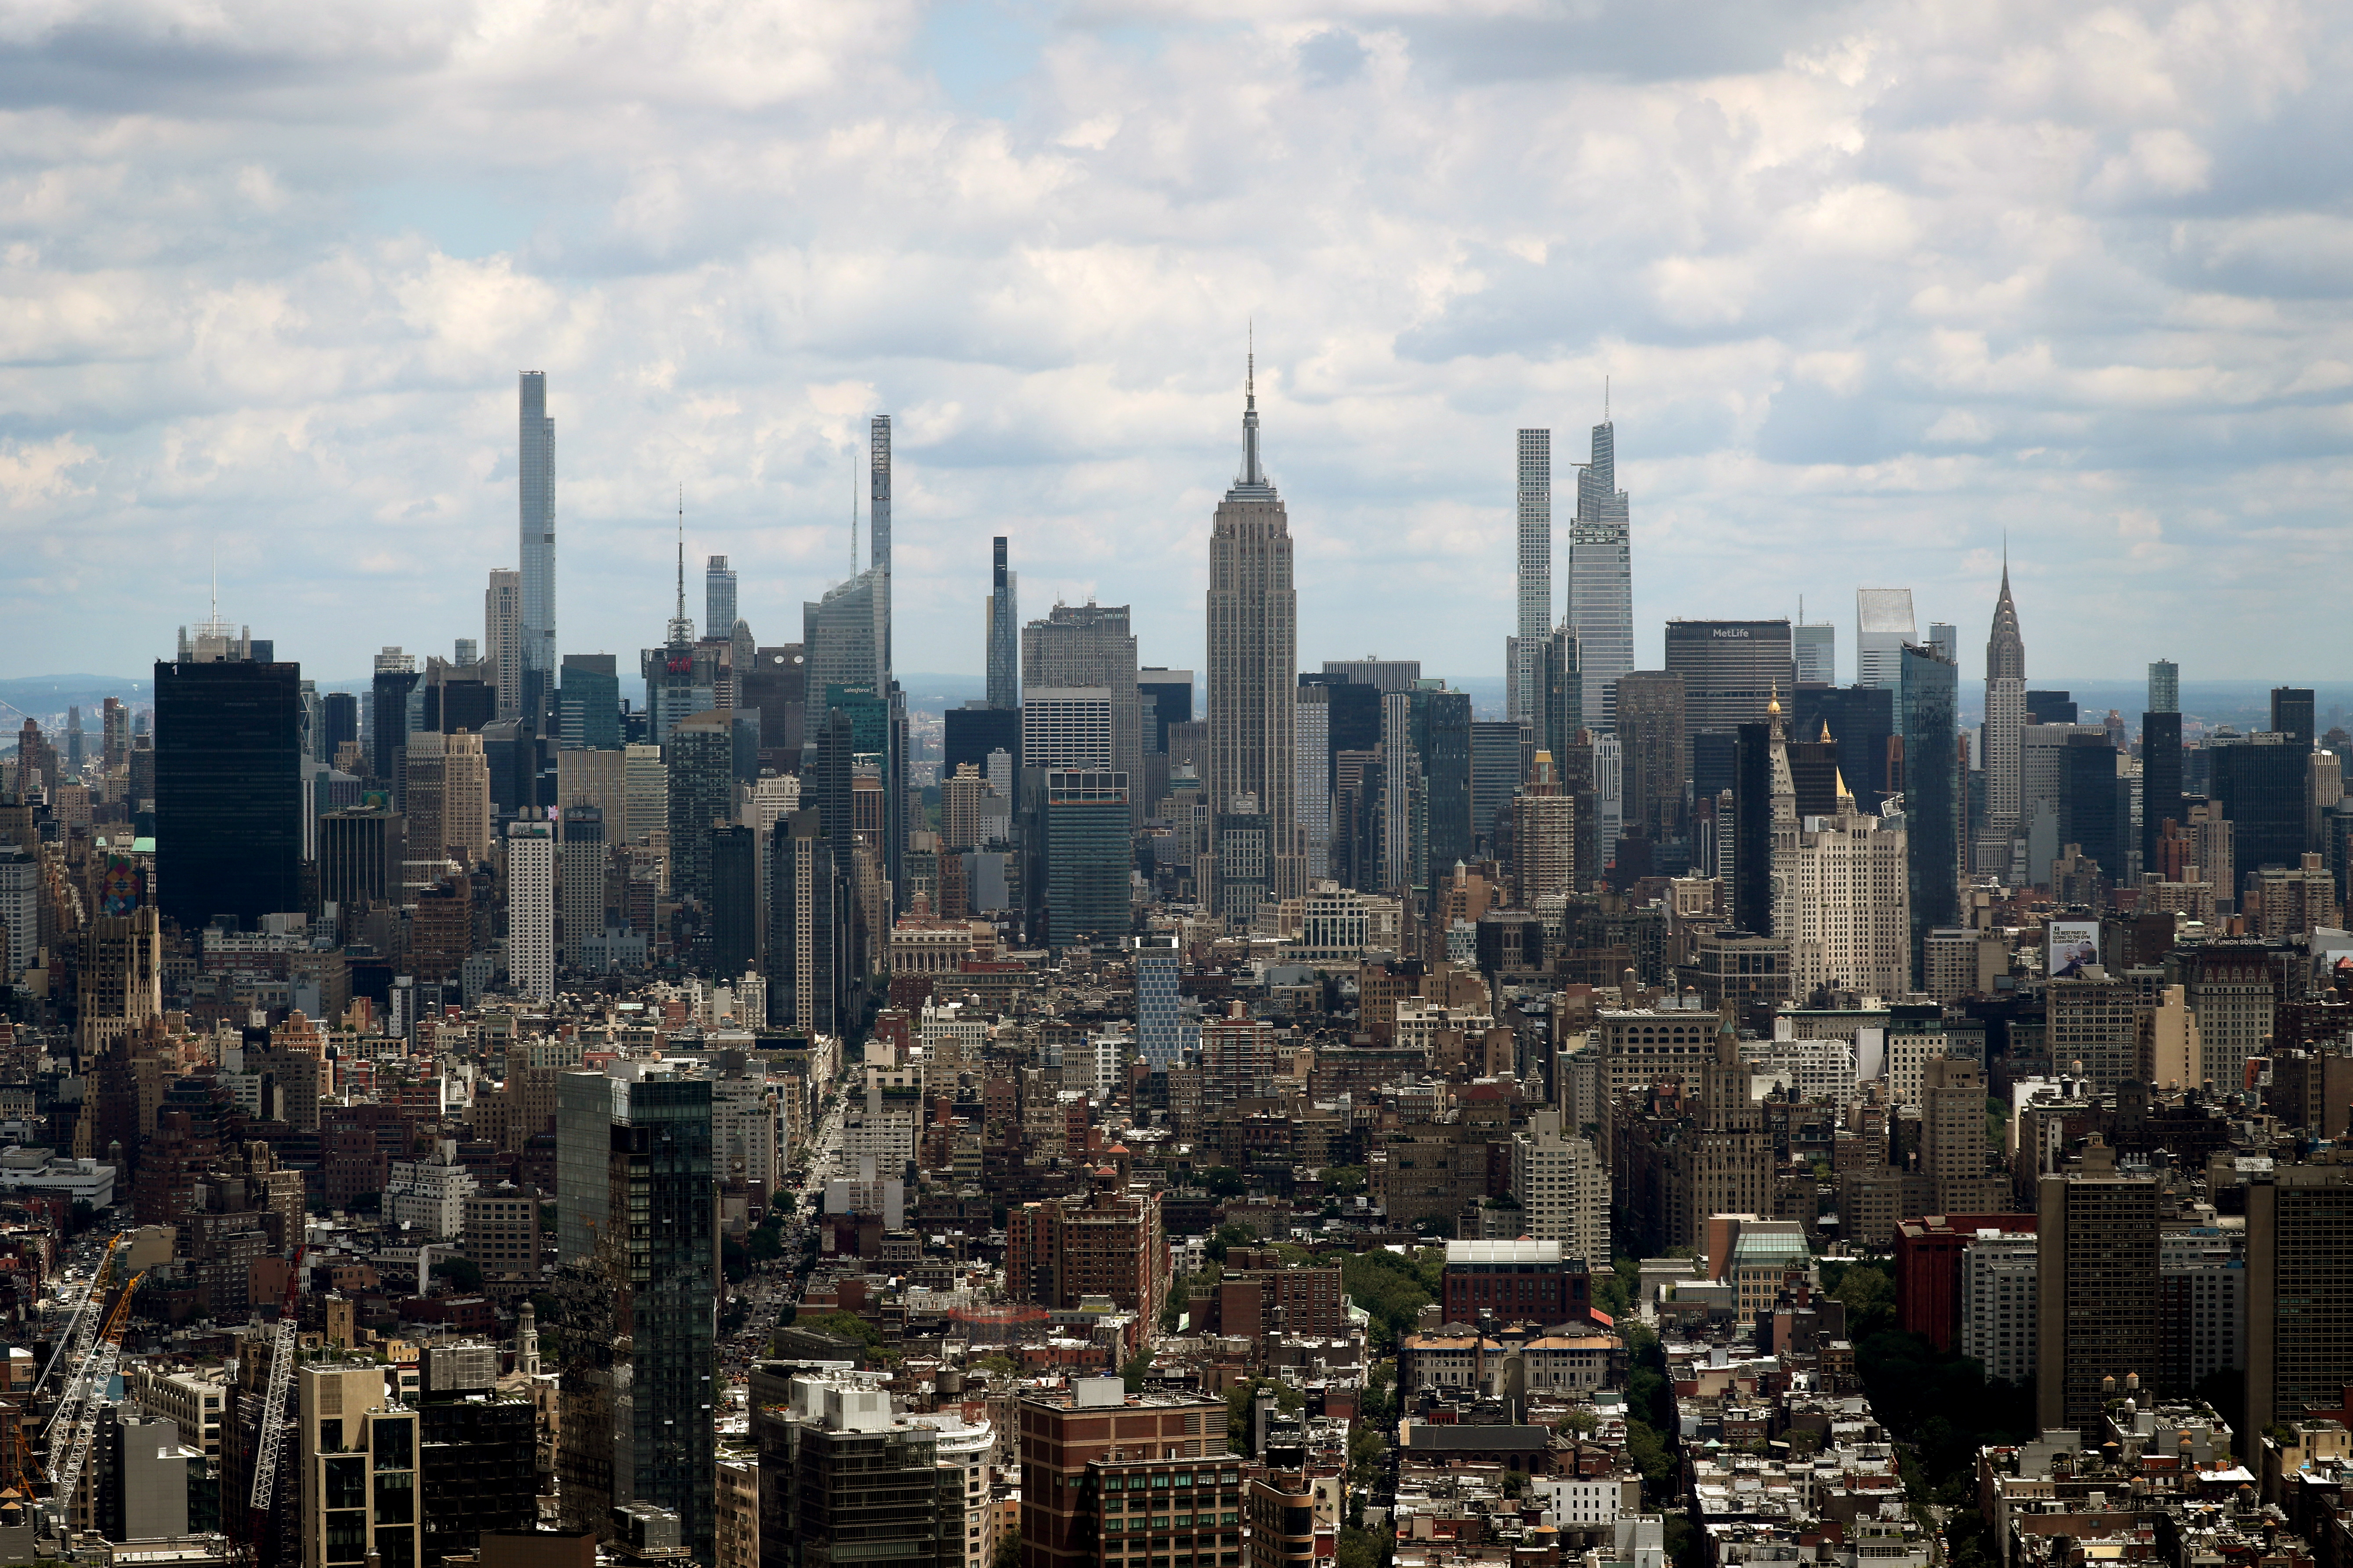 A general view of the skyline of Manhattan as seen from the One World Trade Center Tower in New York City, New York, U.S., June 15, 2021. REUTERS/Mike Segar